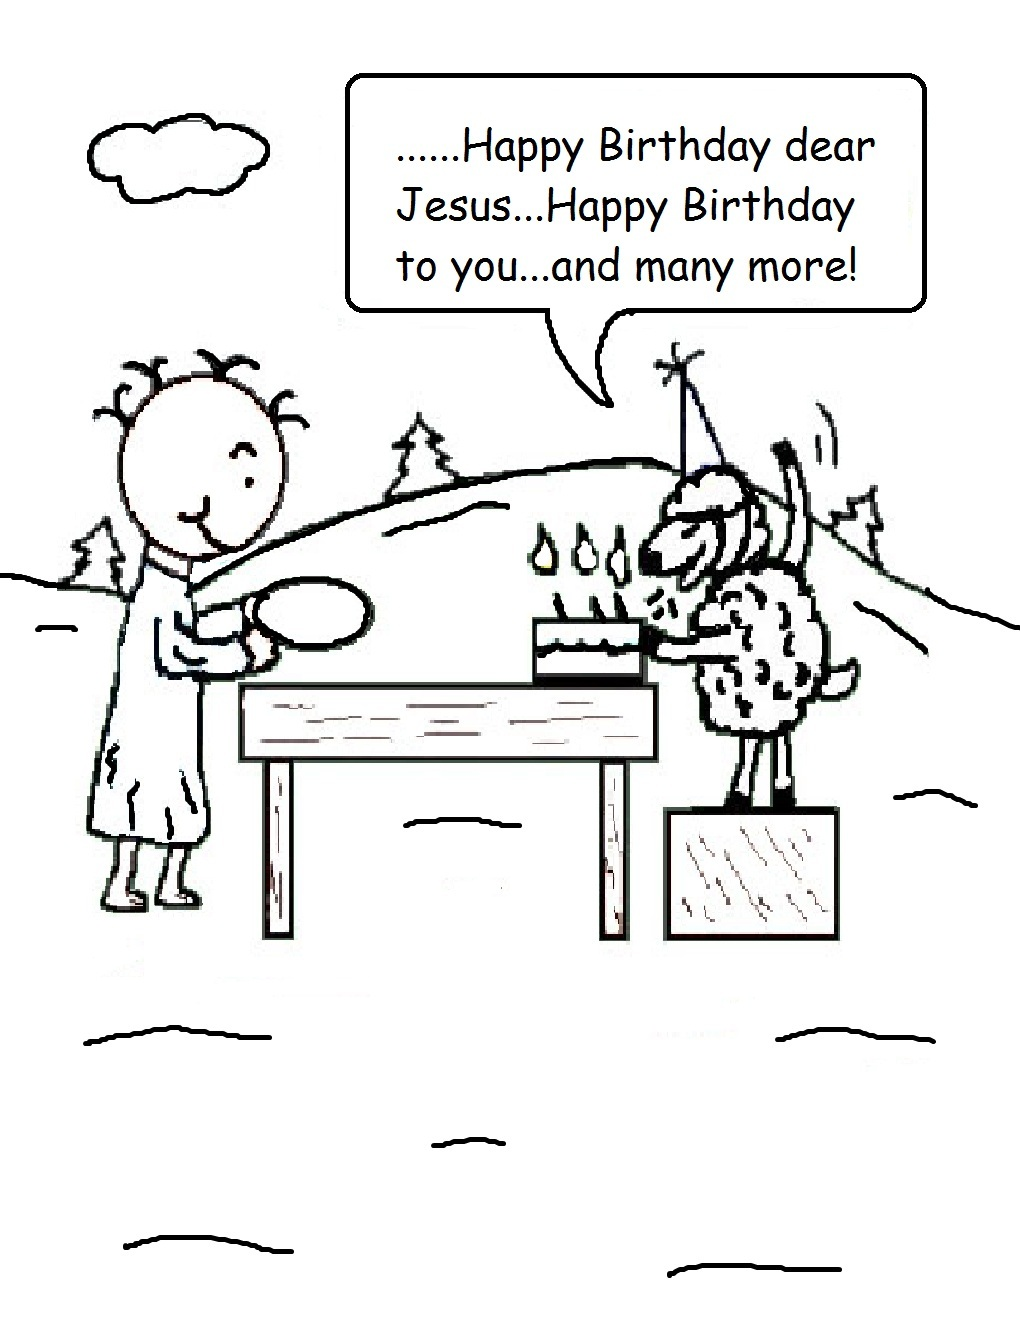 Happy Birthday Jesus Coloring Page Az Coloring Pages Happy Birthday Jesus Coloring Pages